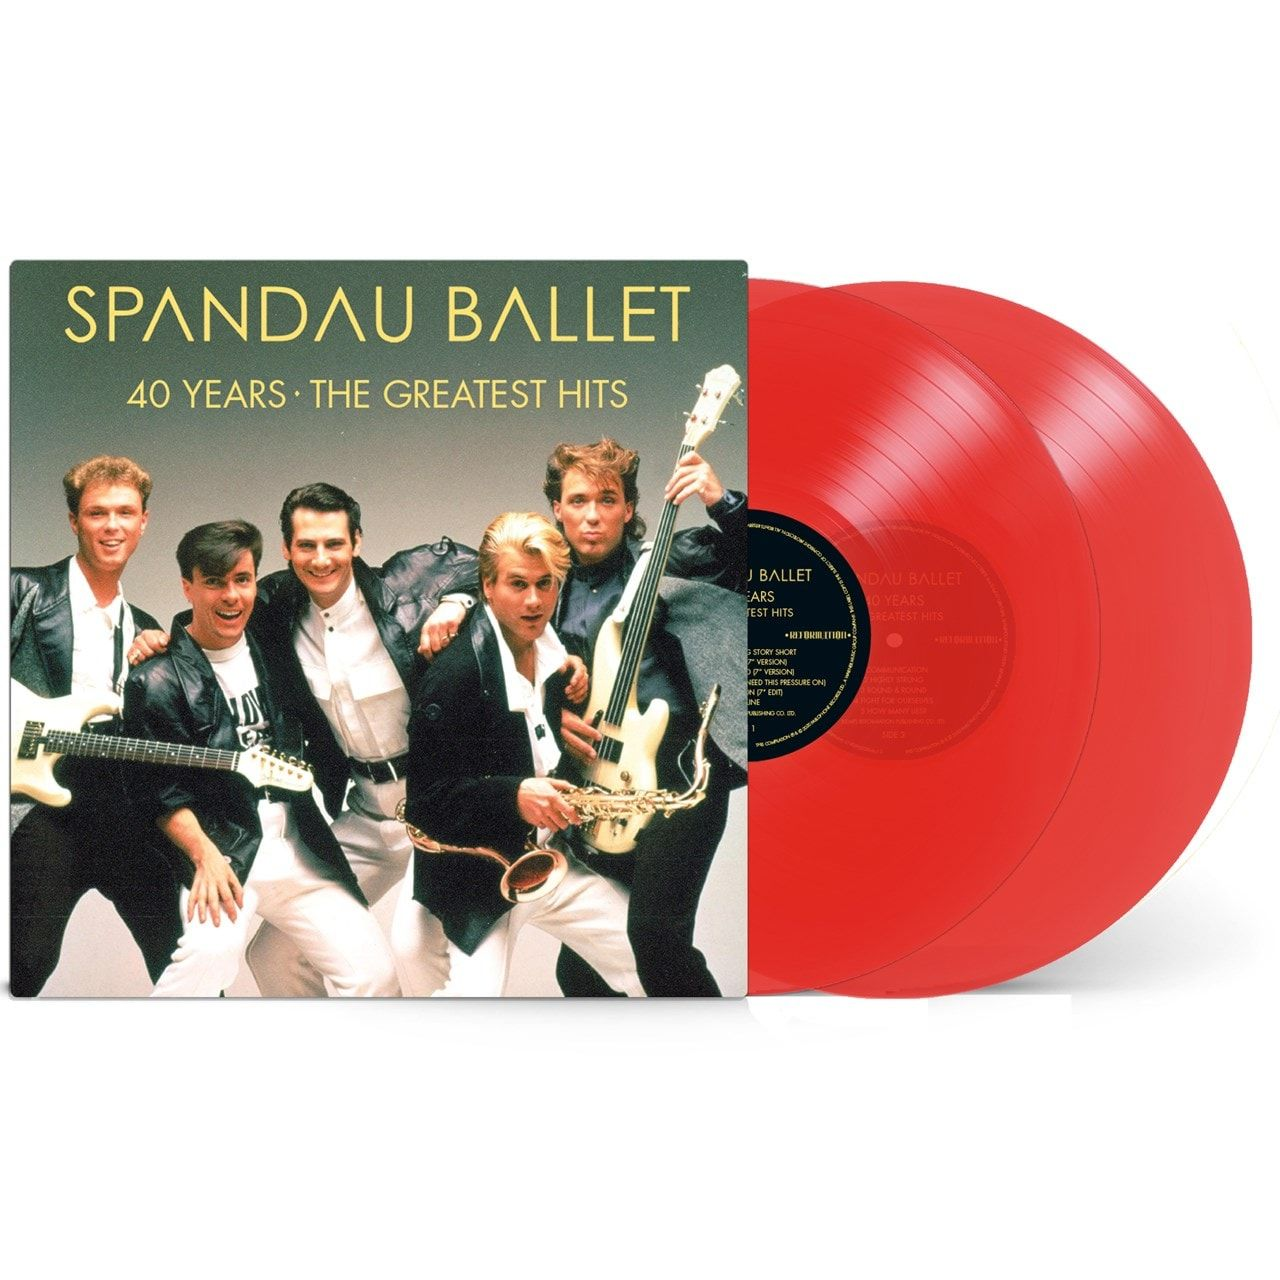 Spandau Ballet - 40 Years The Greatest Hits (2LP Red Vinyl)